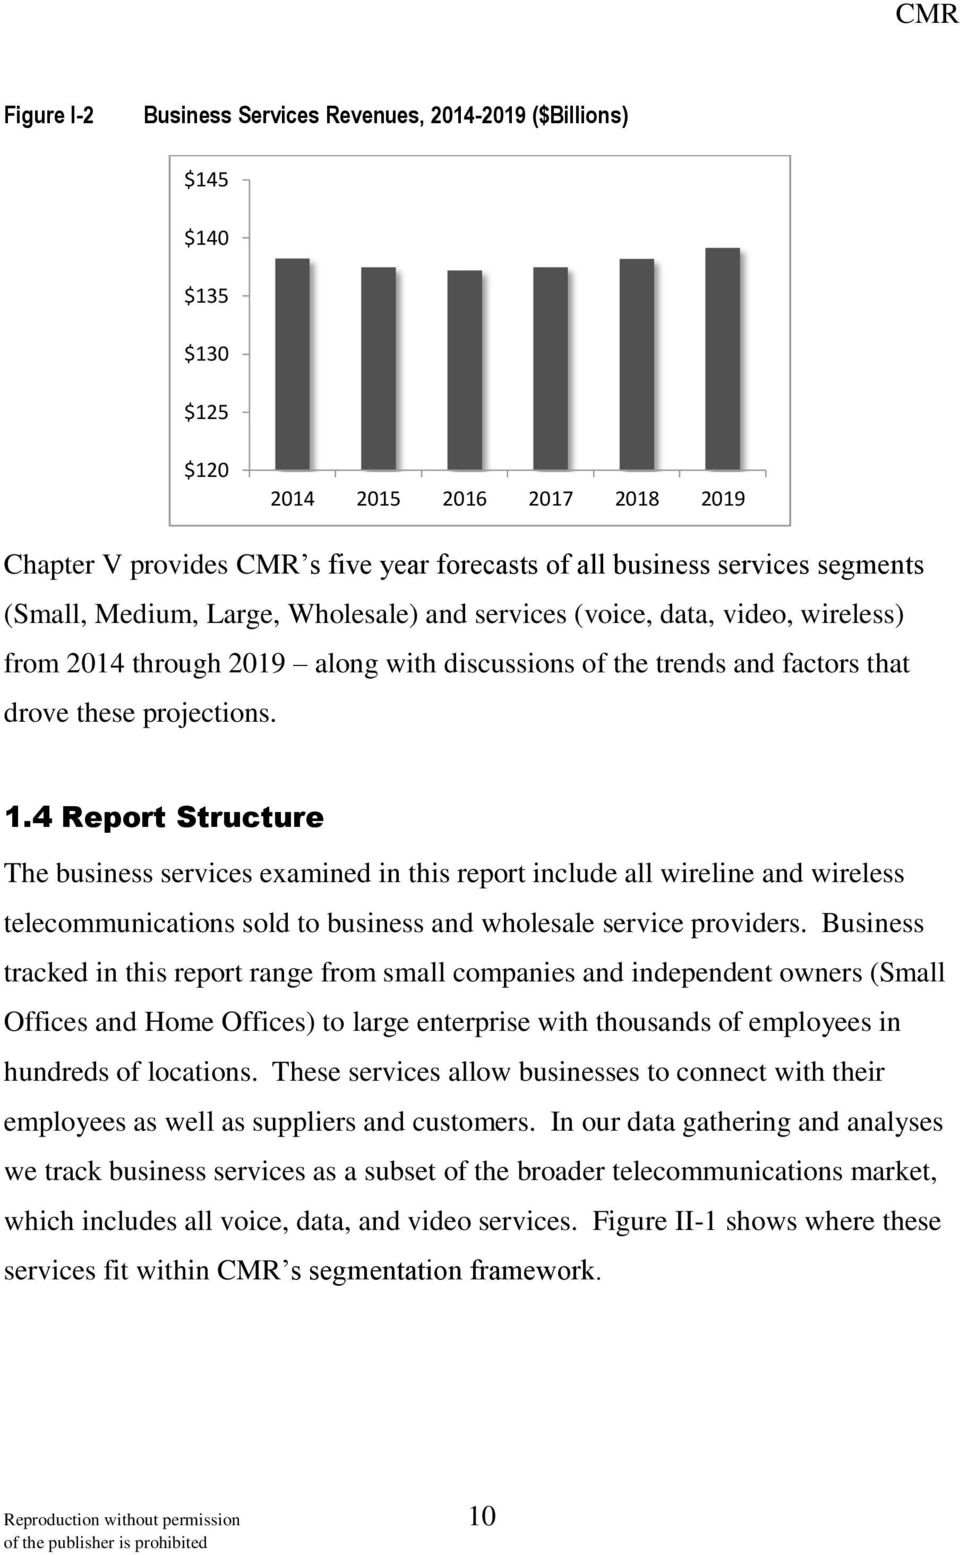 4 Report Structure The business services examined in this report include all wireline and wireless telecommunications sold to business and wholesale service providers.